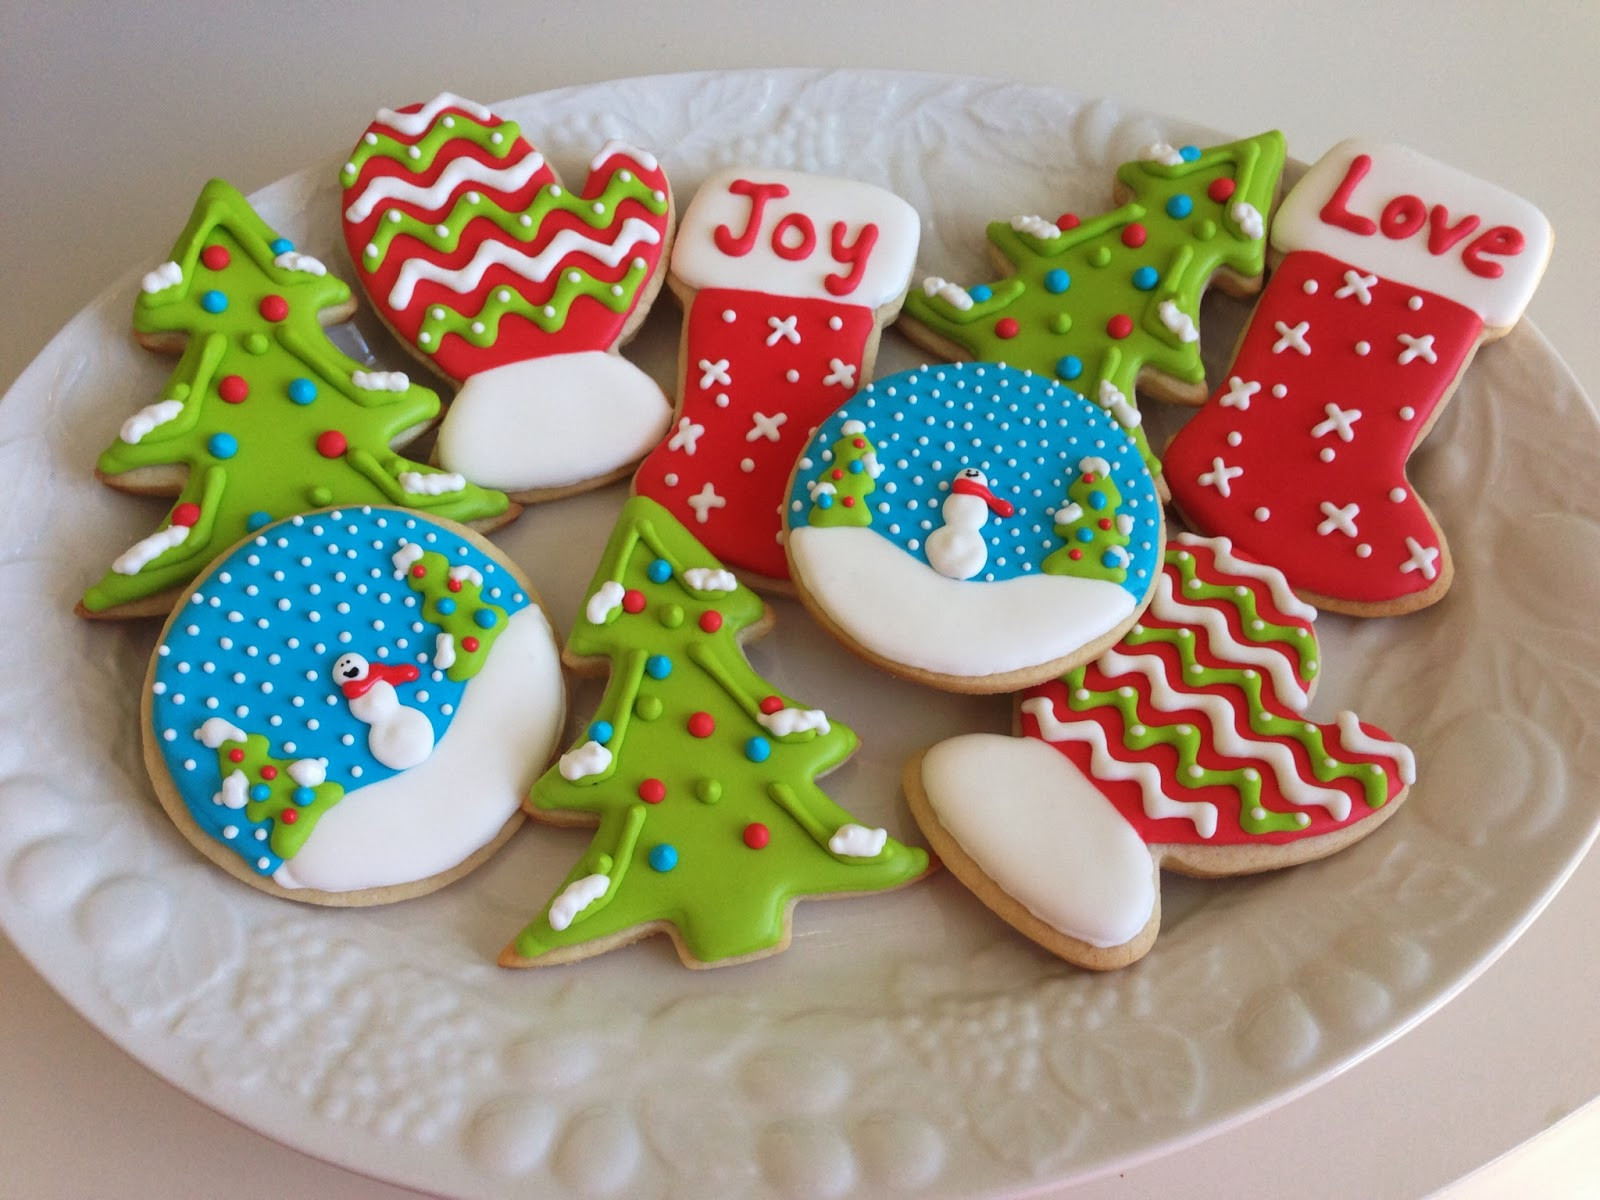 Christmas Cookie Icing  monograms & cake Christmas Cut Out Sugar Cookies with